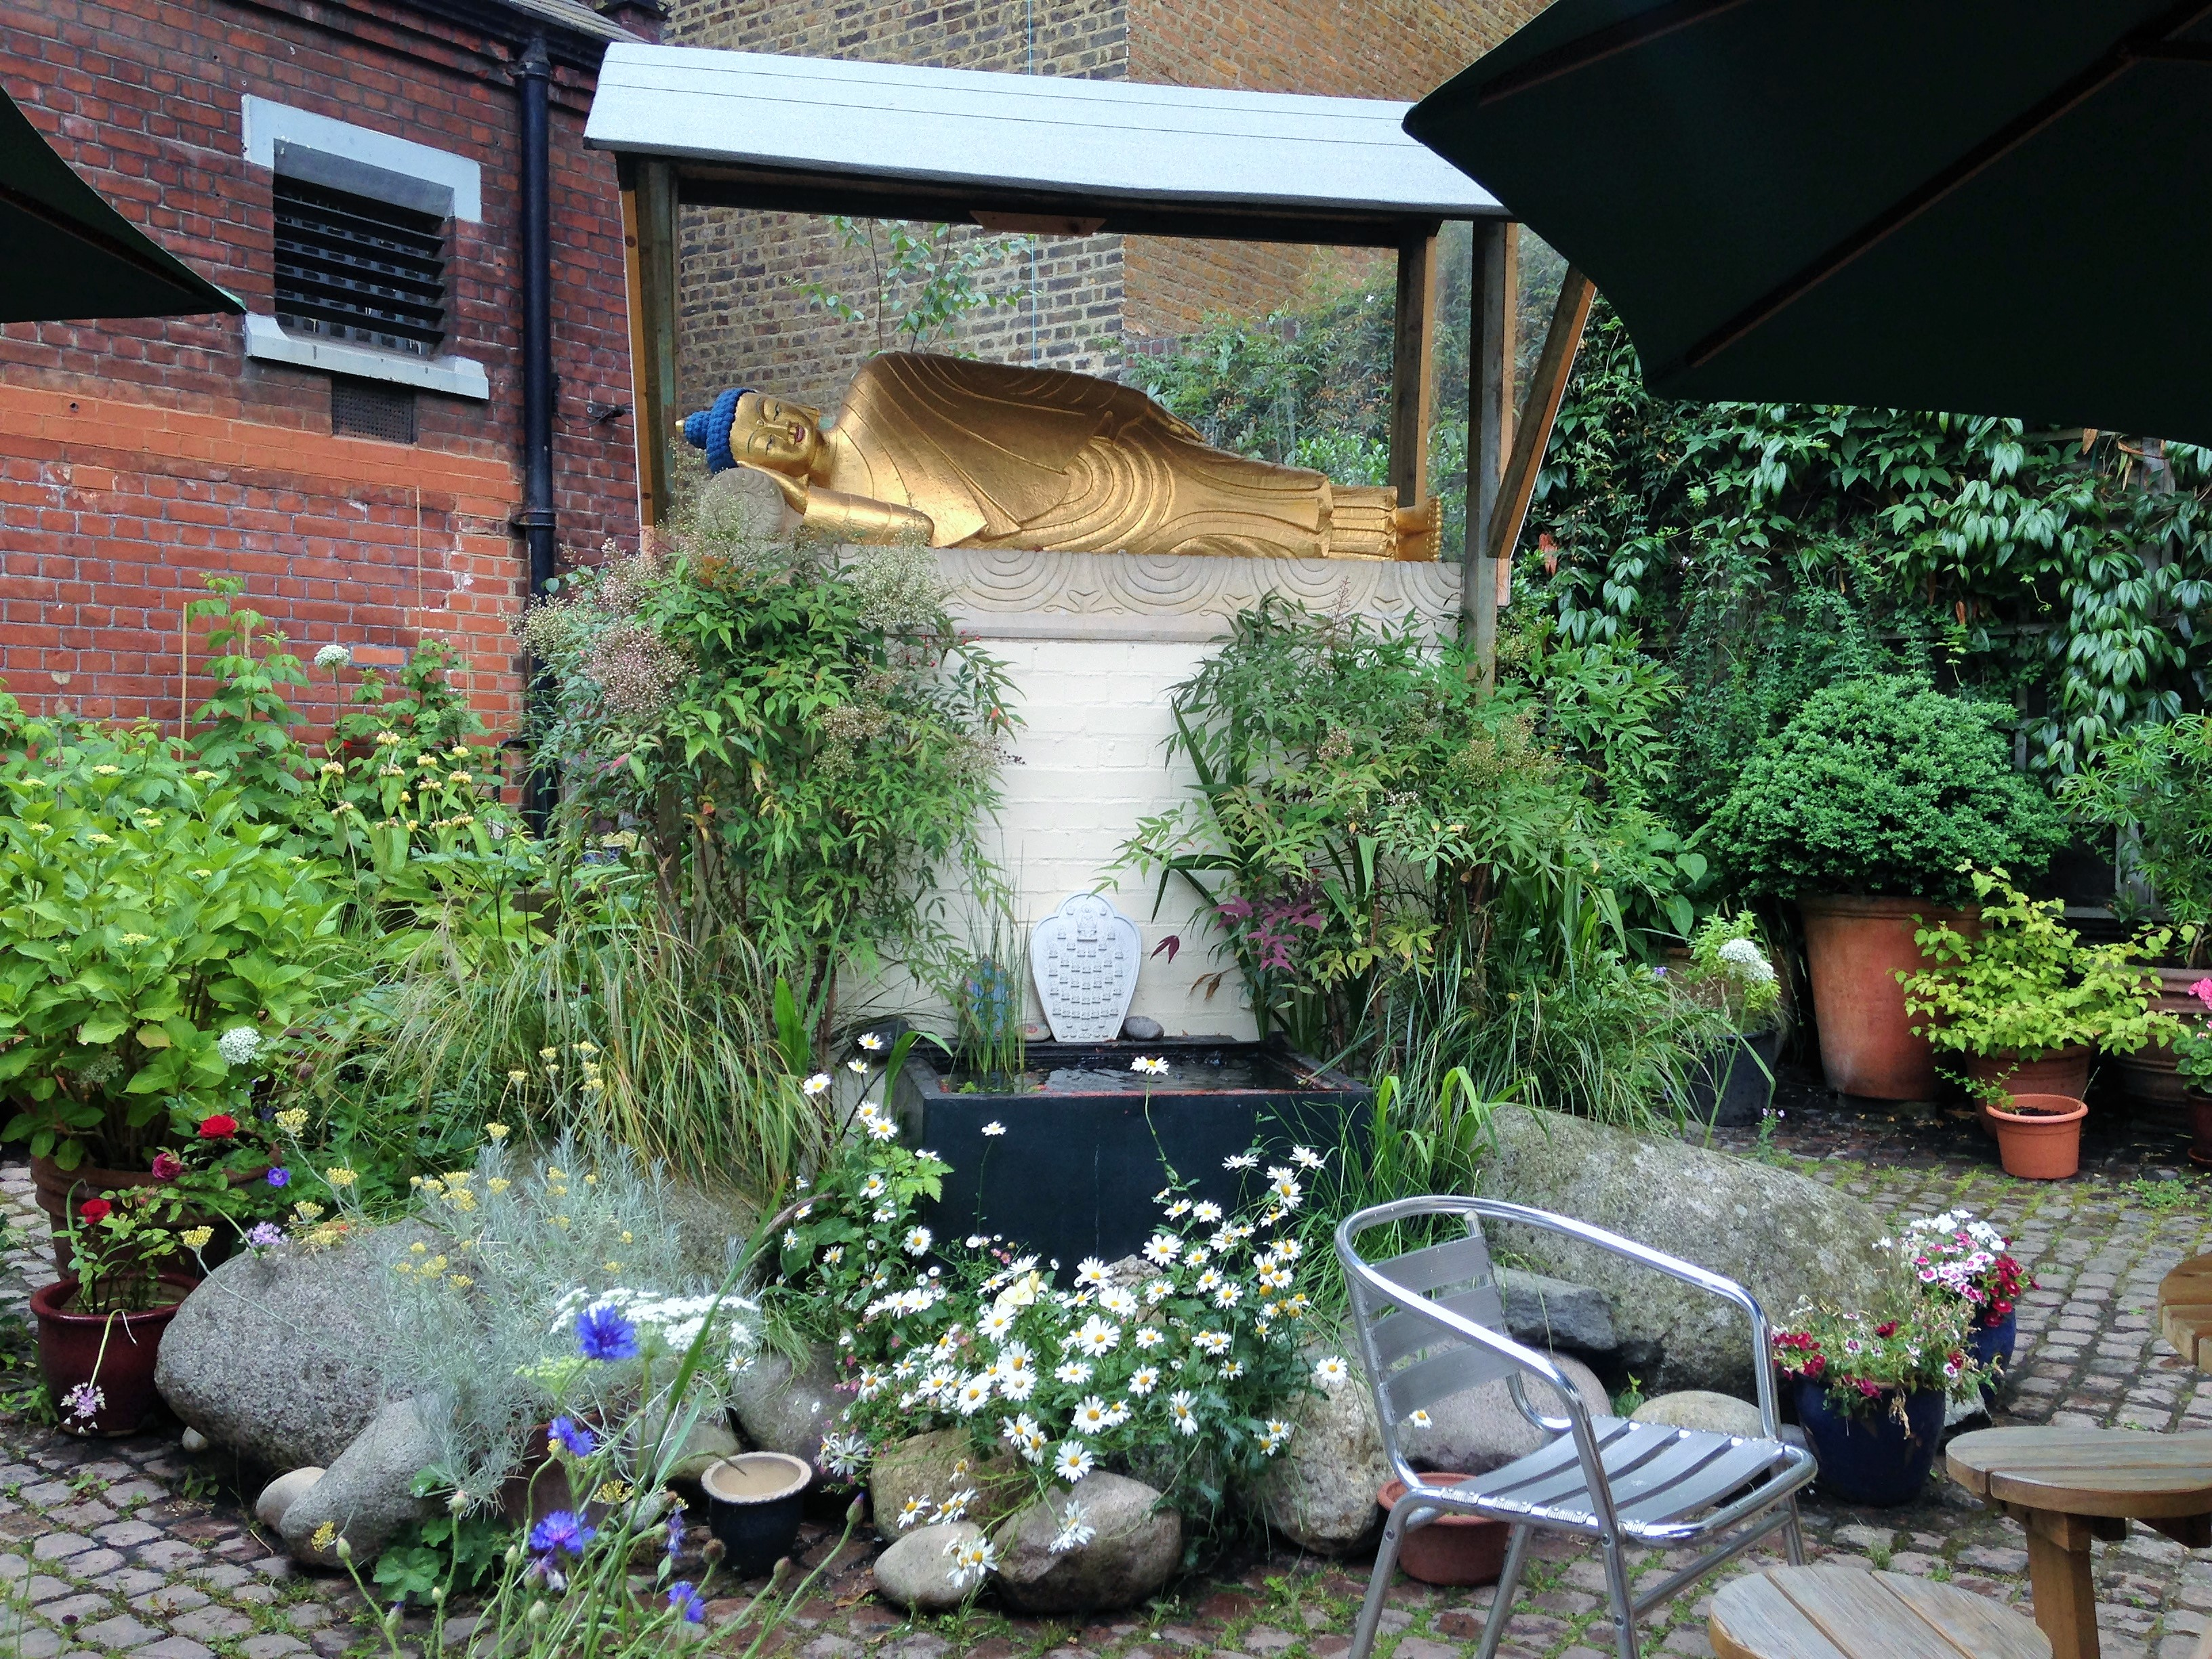 Golden Buddha in the courtyard of Jamyang Buddhist Centre - kenningtonrunoff.com